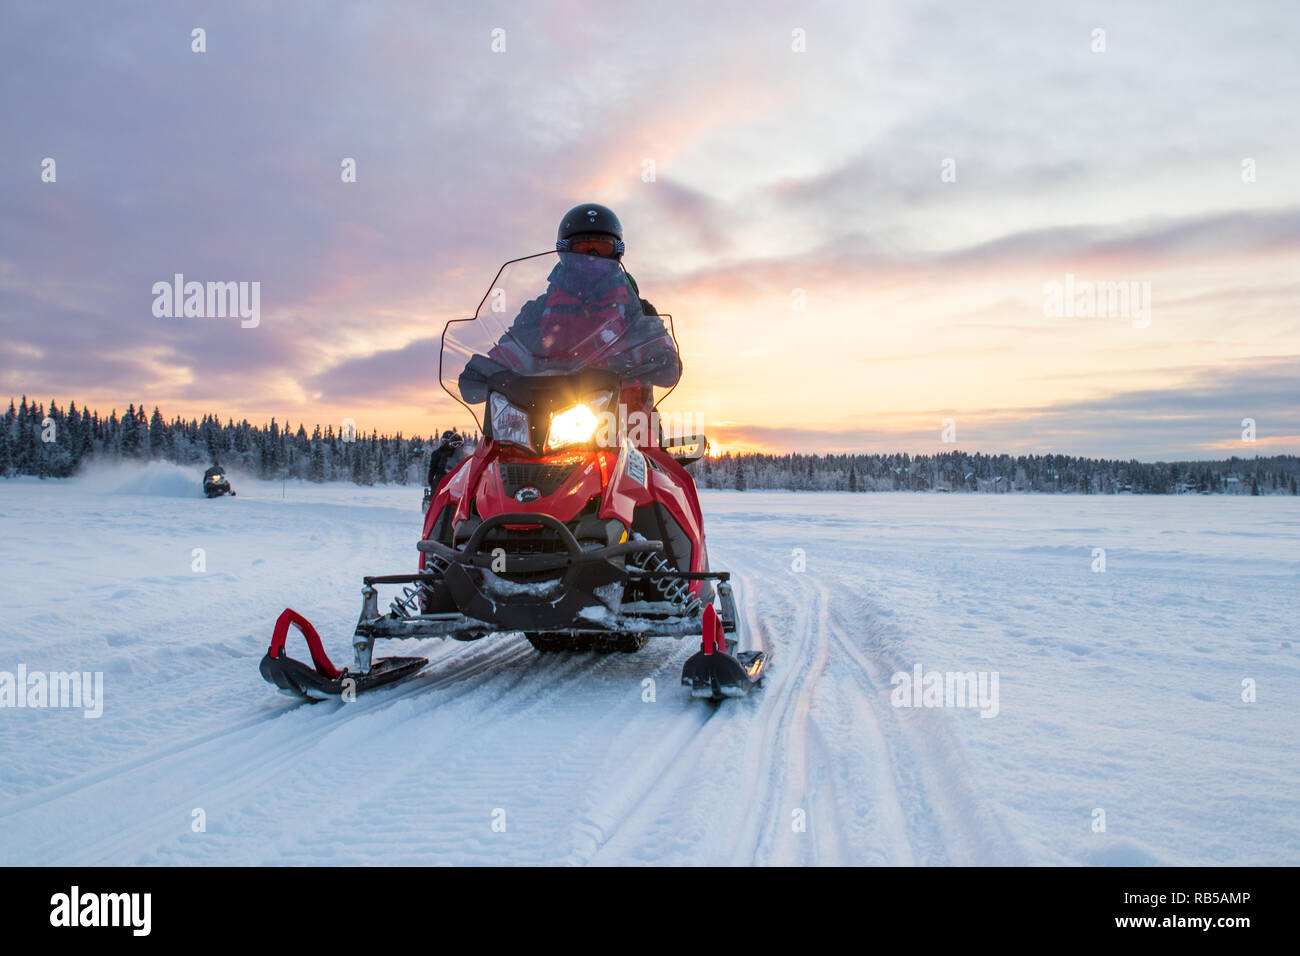 Person driving a snowmobile at sunrise over a frozen lake in northern Sweden. Shot during a sunset tour close to the Ice Hotel. Open frozen lake. - Stock Image